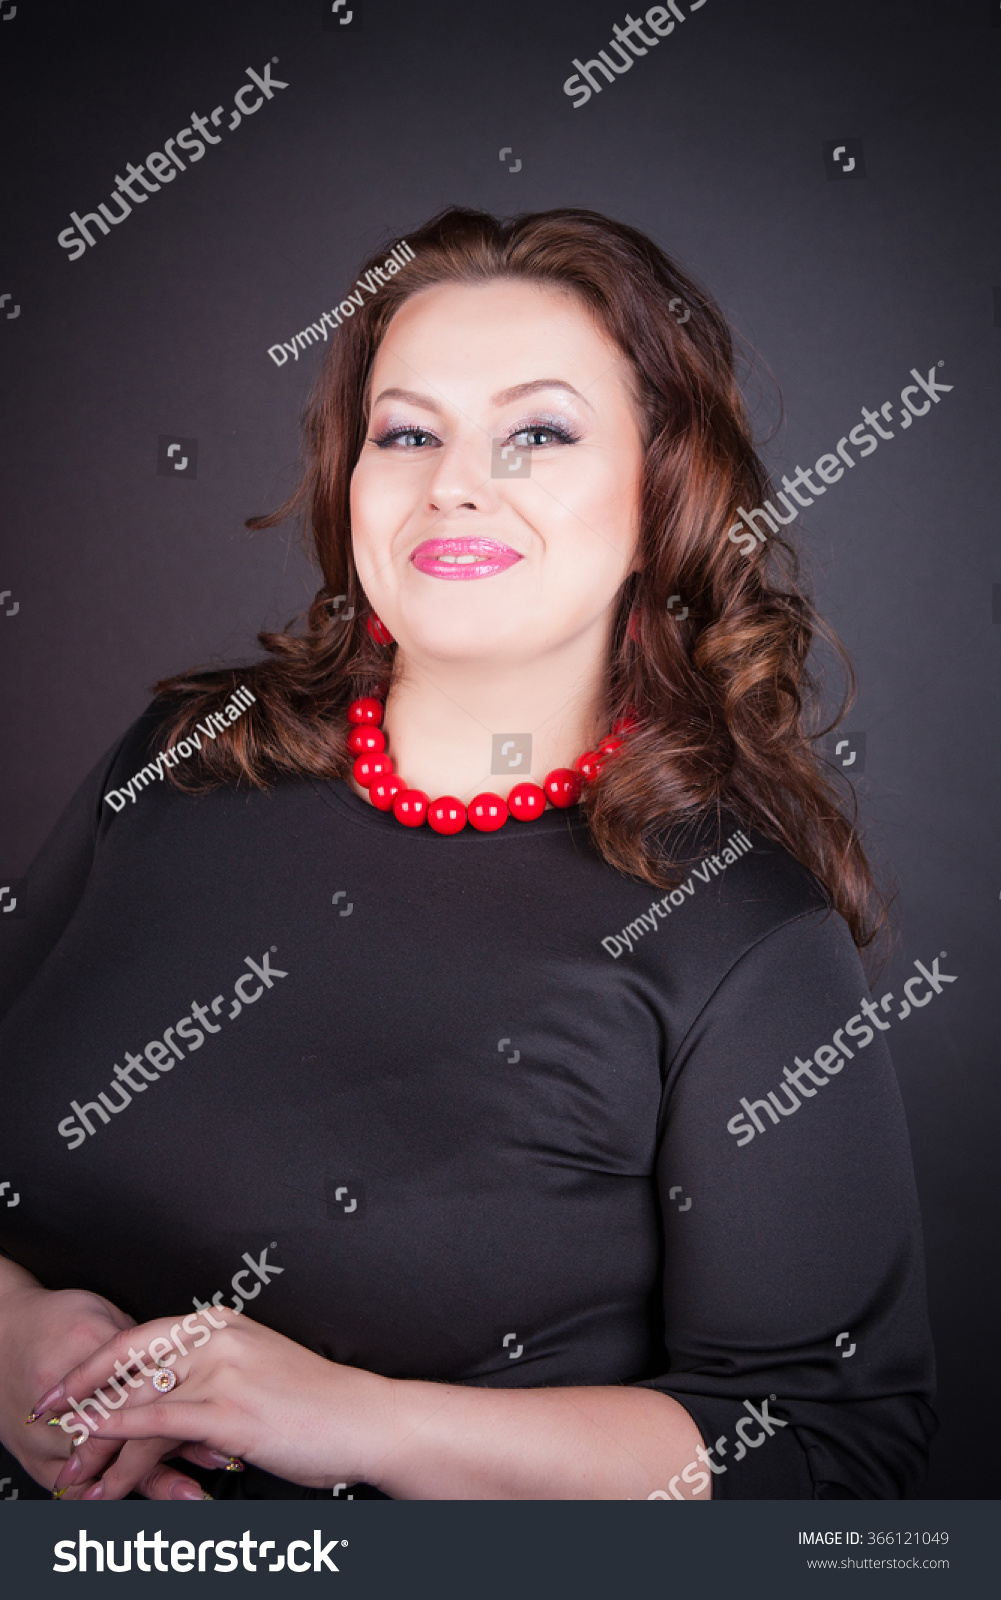 Beautiful buxom girl in the large black… Stock Photo 366121049 ...